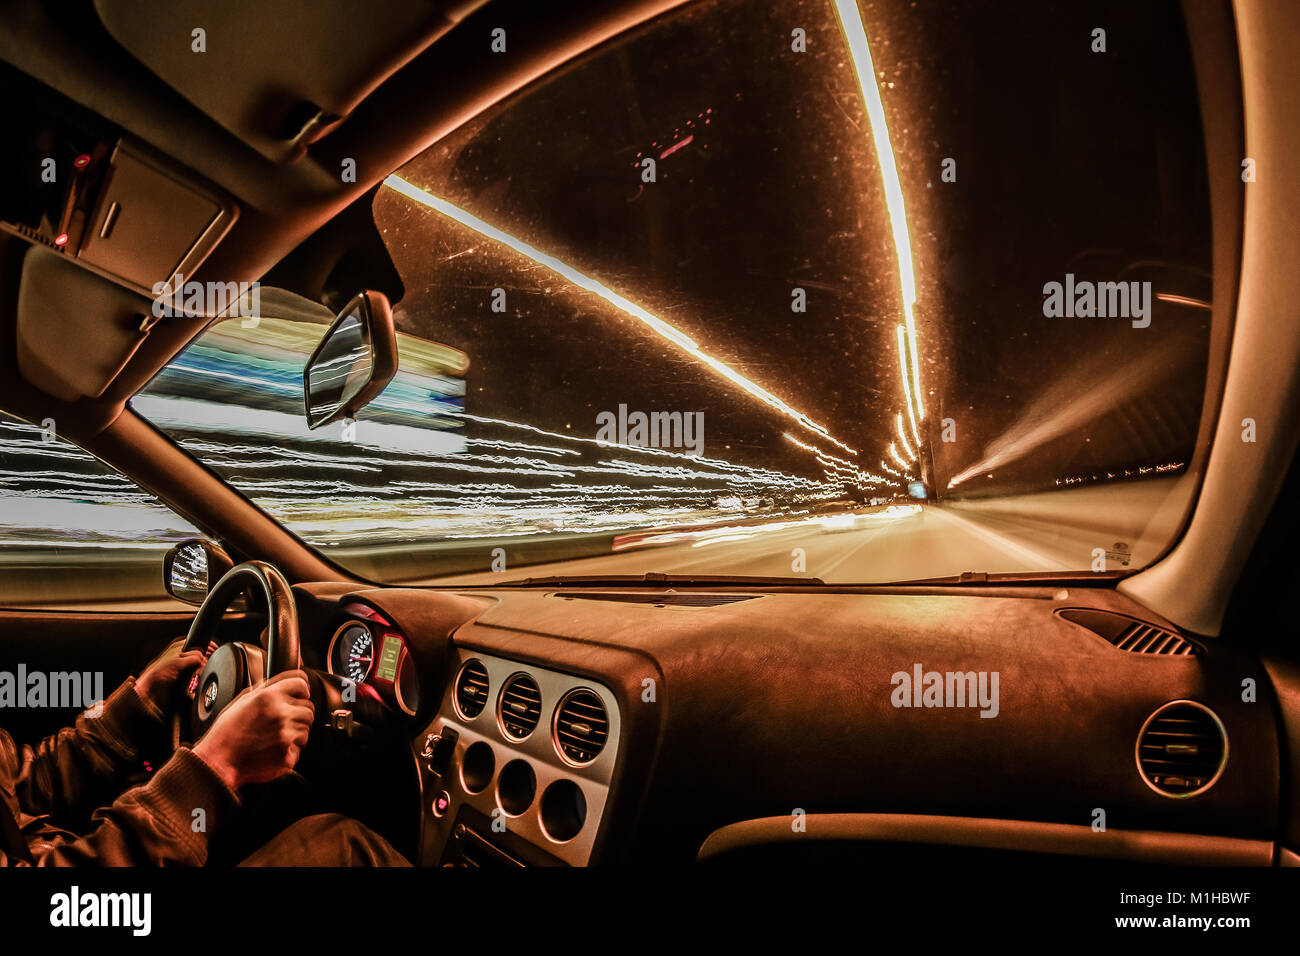 driving through the night stock photos driving through the night stock images alamy. Black Bedroom Furniture Sets. Home Design Ideas